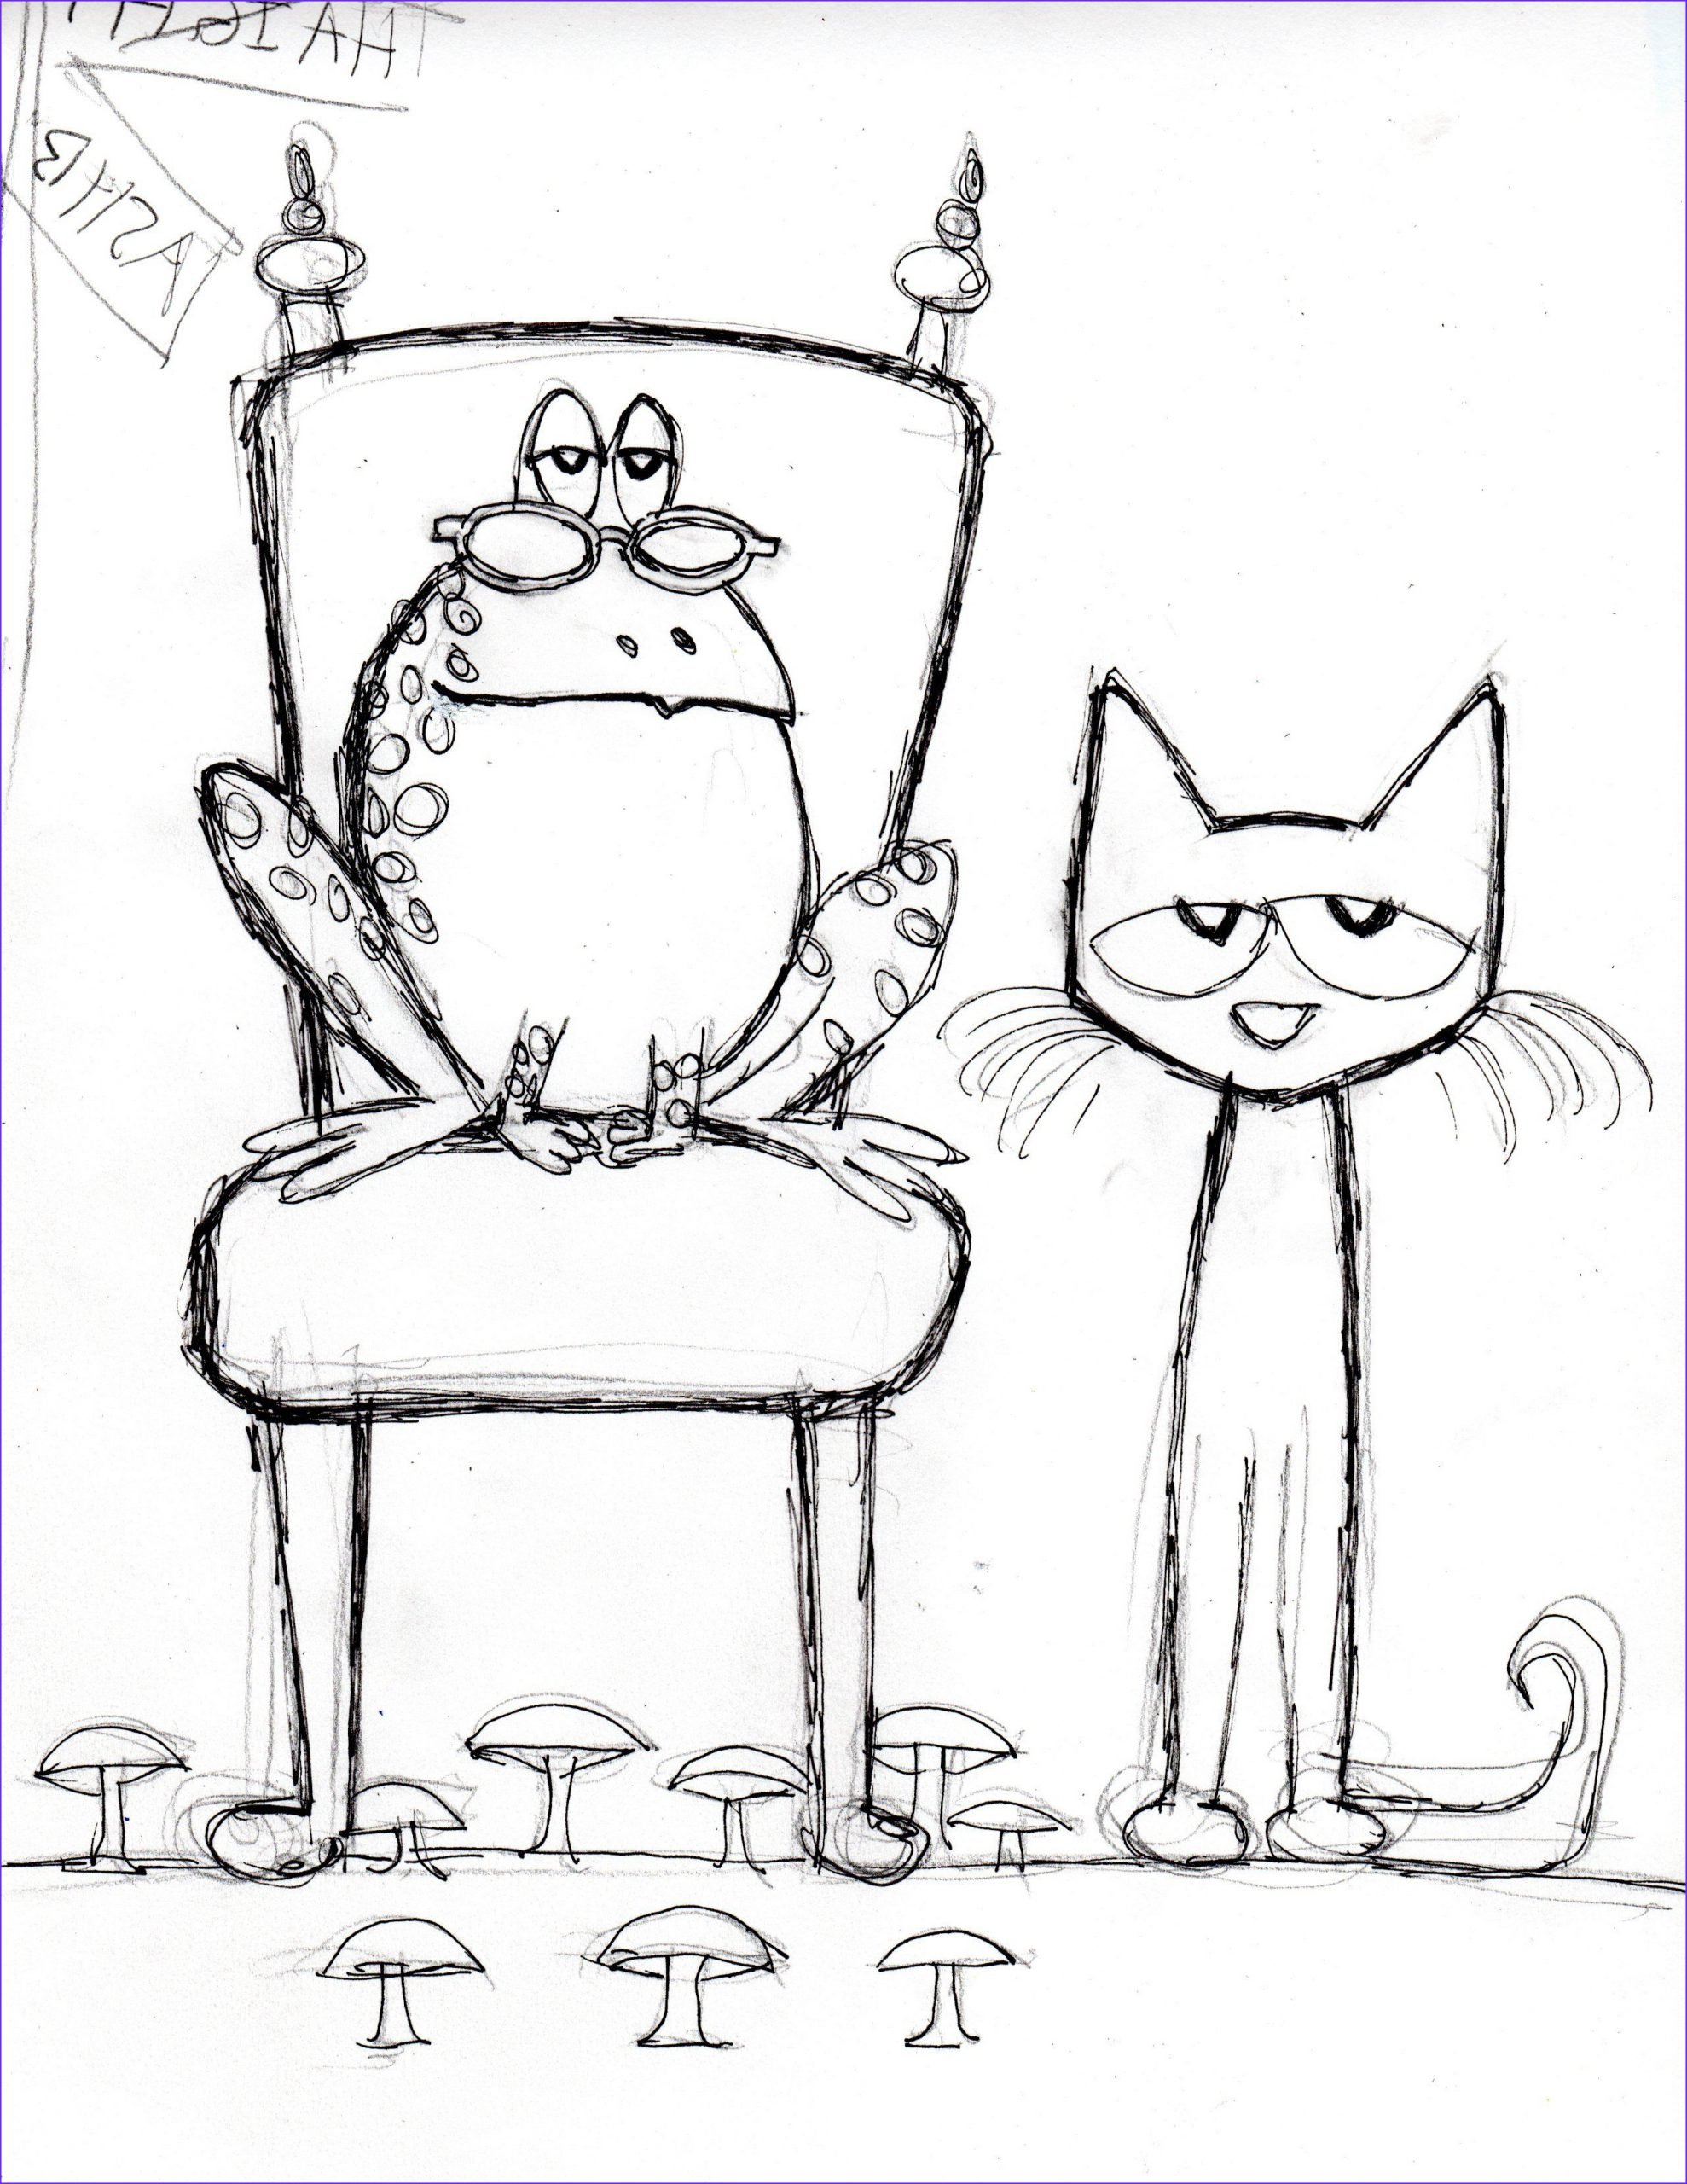 Pete the Cat and His Four Groovy buttons Coloring Page Luxury Photography Pete the Cat and His Four Groovy buttons Sketch Coloring Page